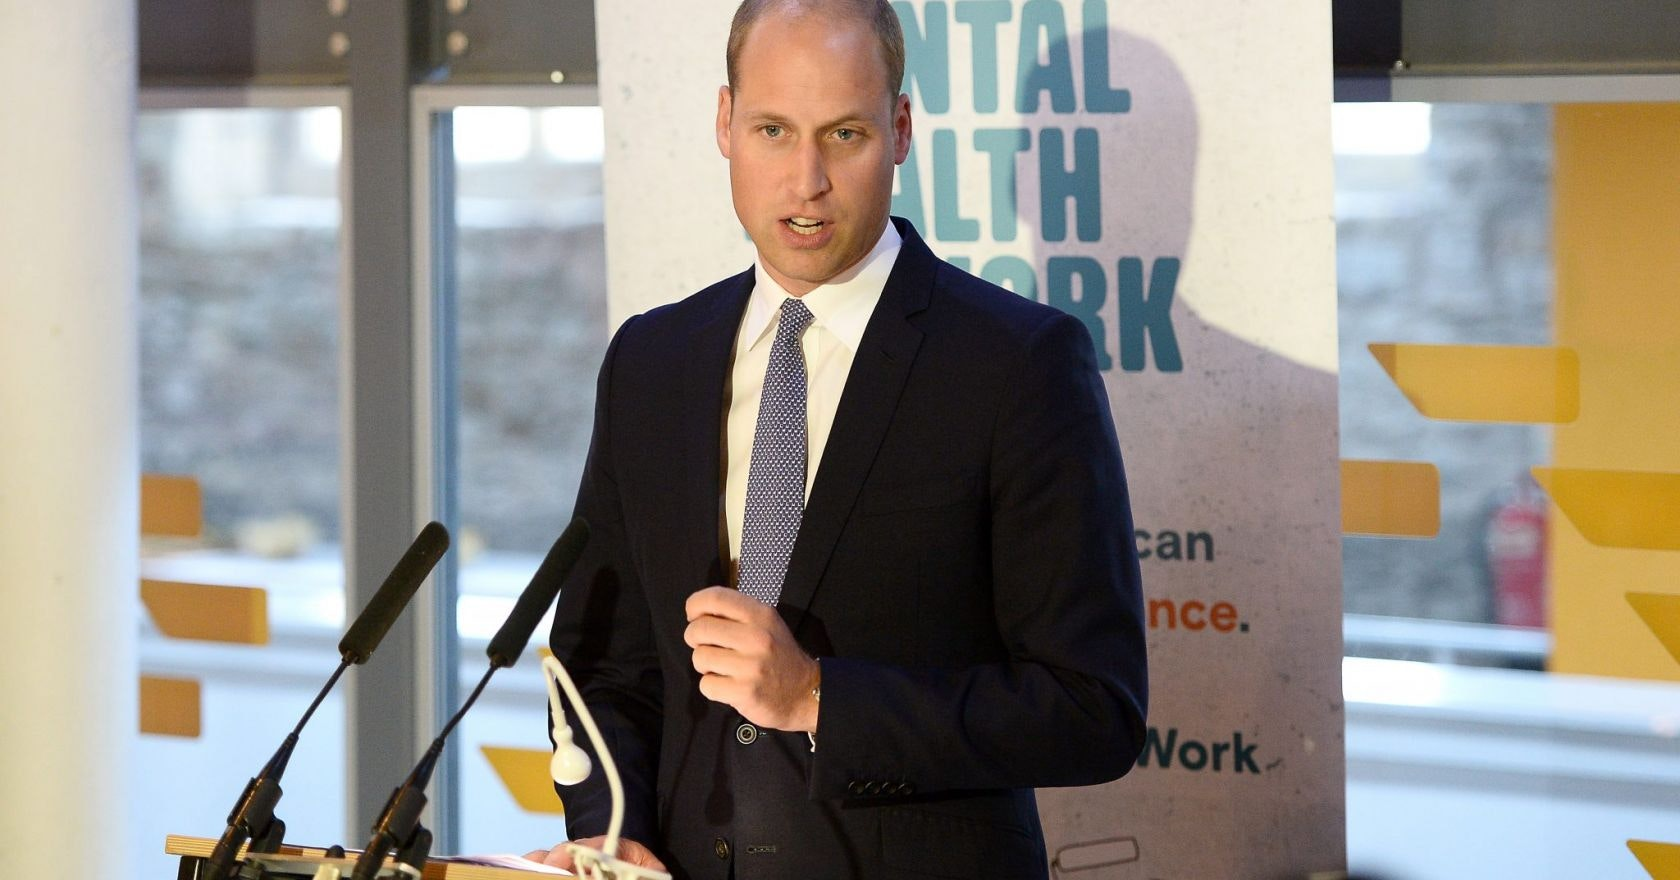 Prince William says celebrities were reluctant to put their name to mental health charity